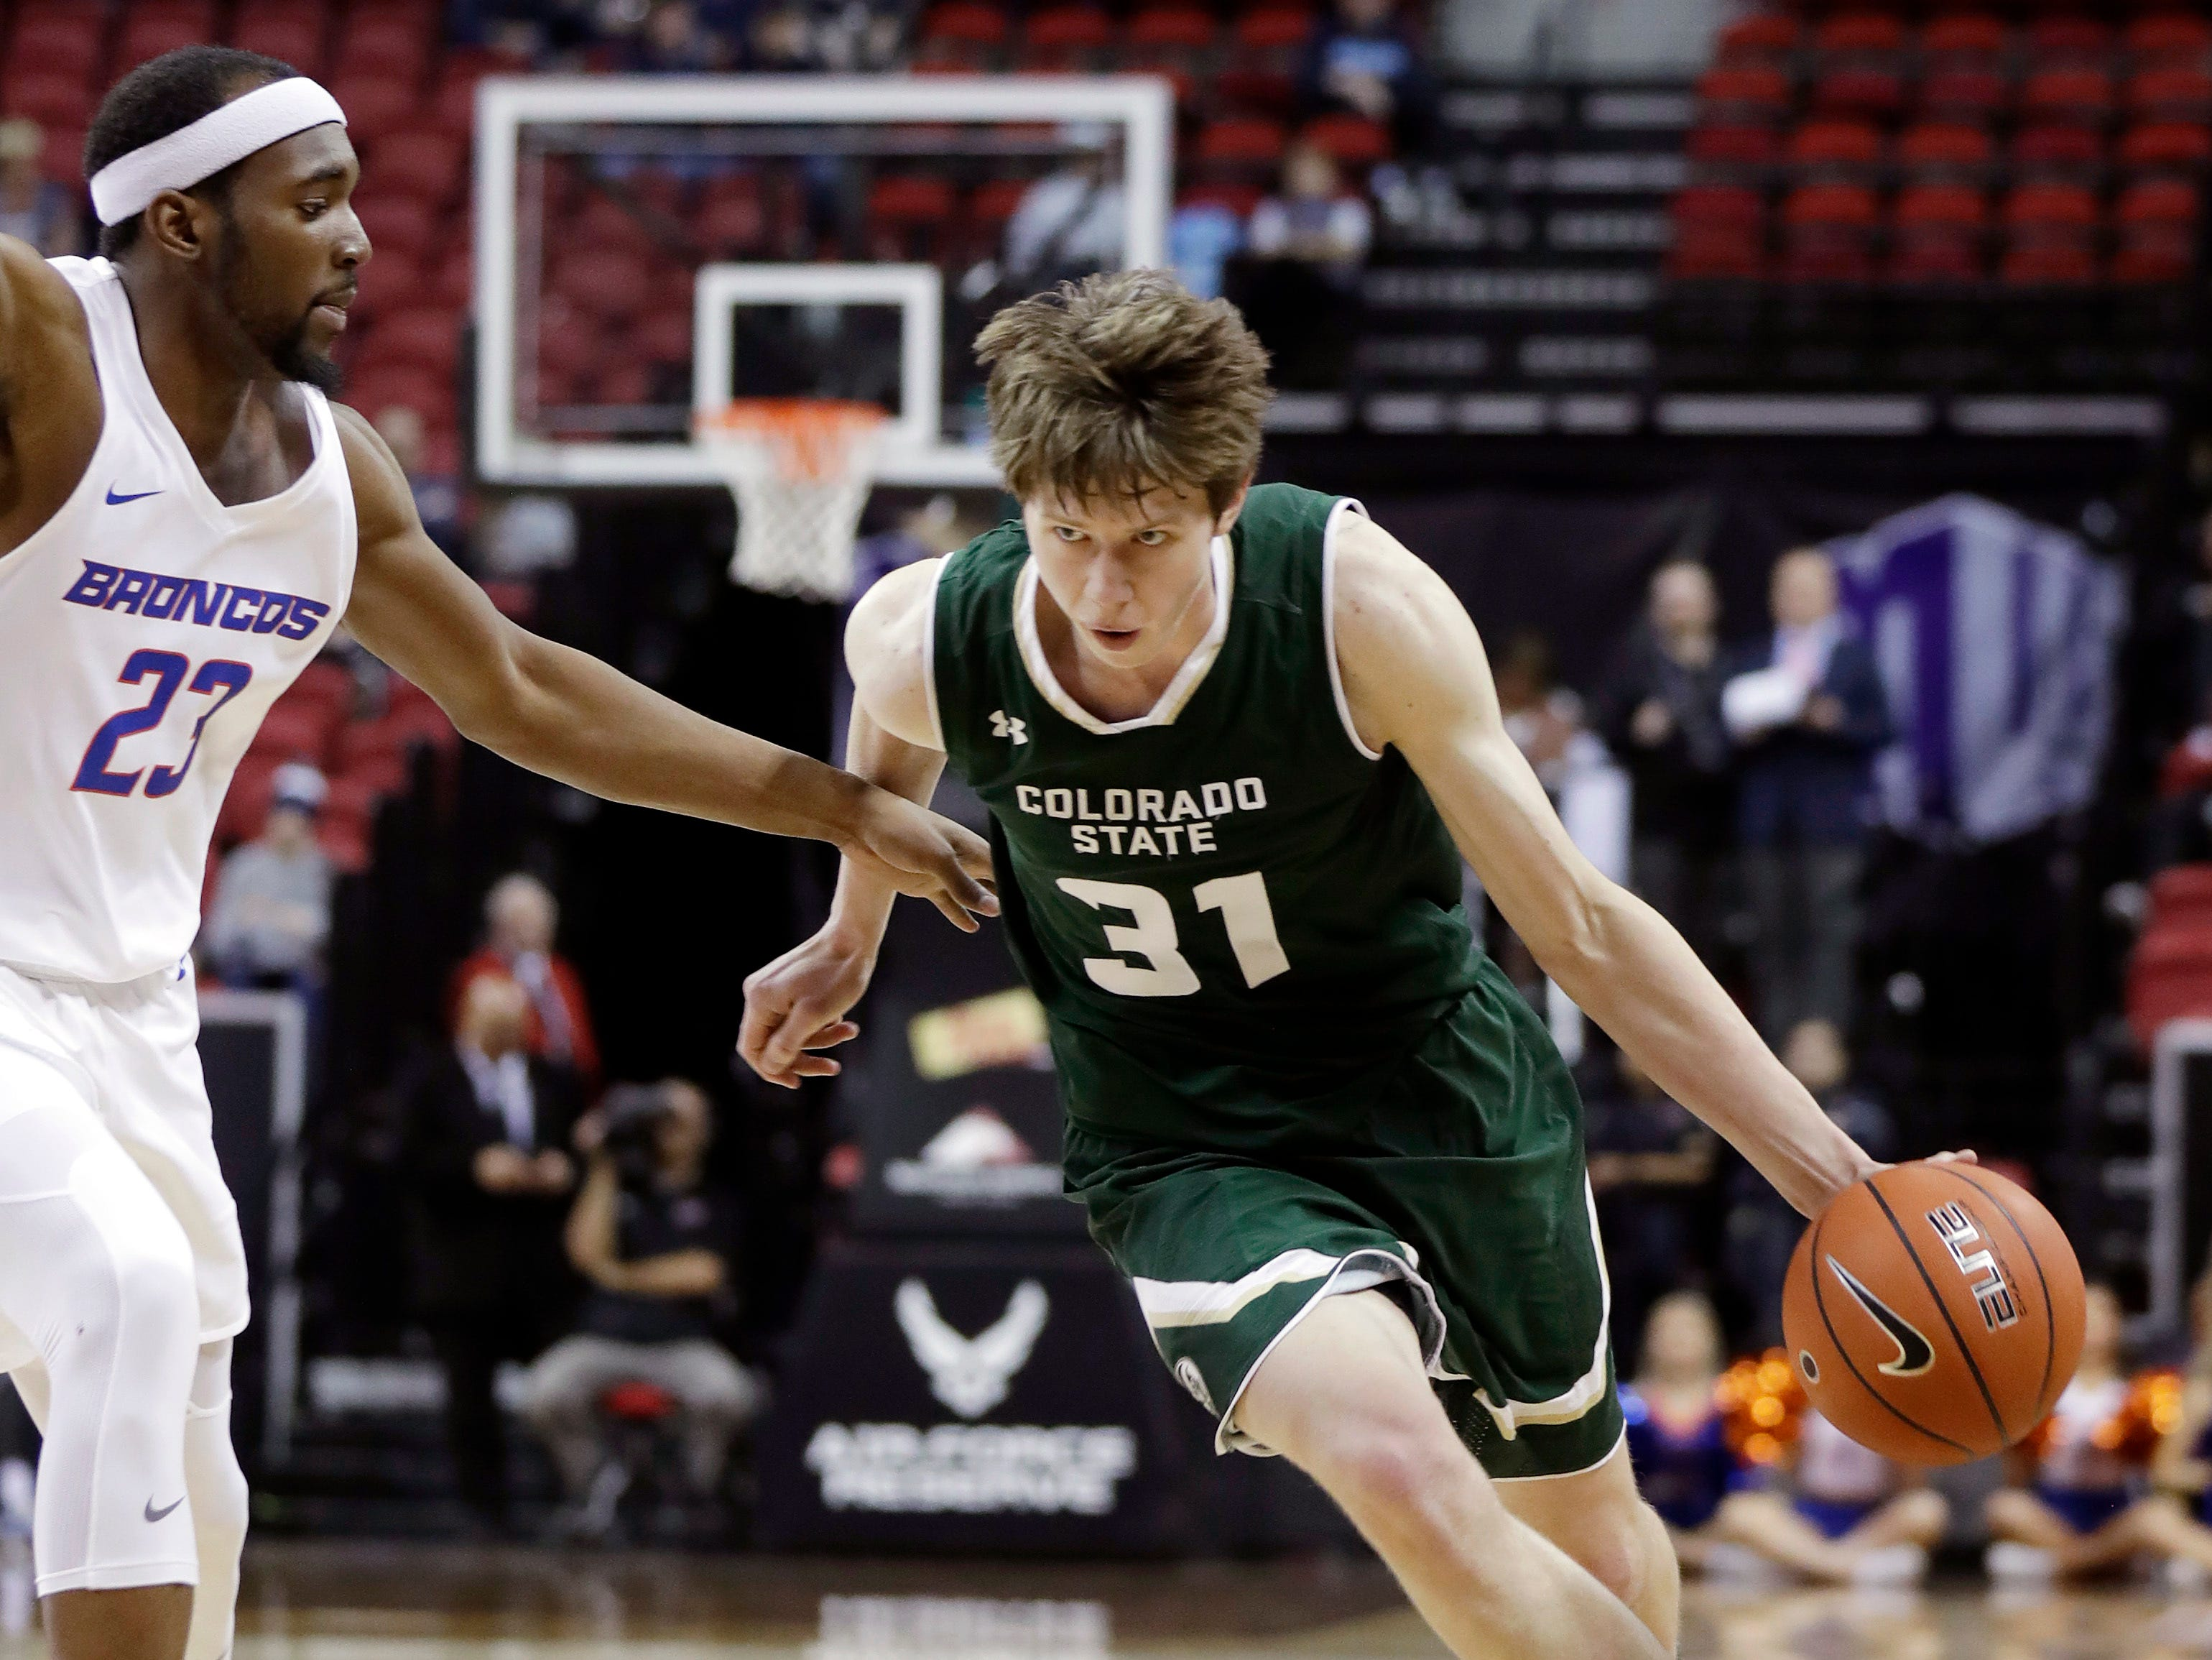 Colorado State's Adam Thistlewood (31) drives past Boise State's Roderick Williams (23) during the second half of an NCAA college basketball game in the Mountain West Conference tournament, Wednesday, March 13, 2019, in Las Vegas.